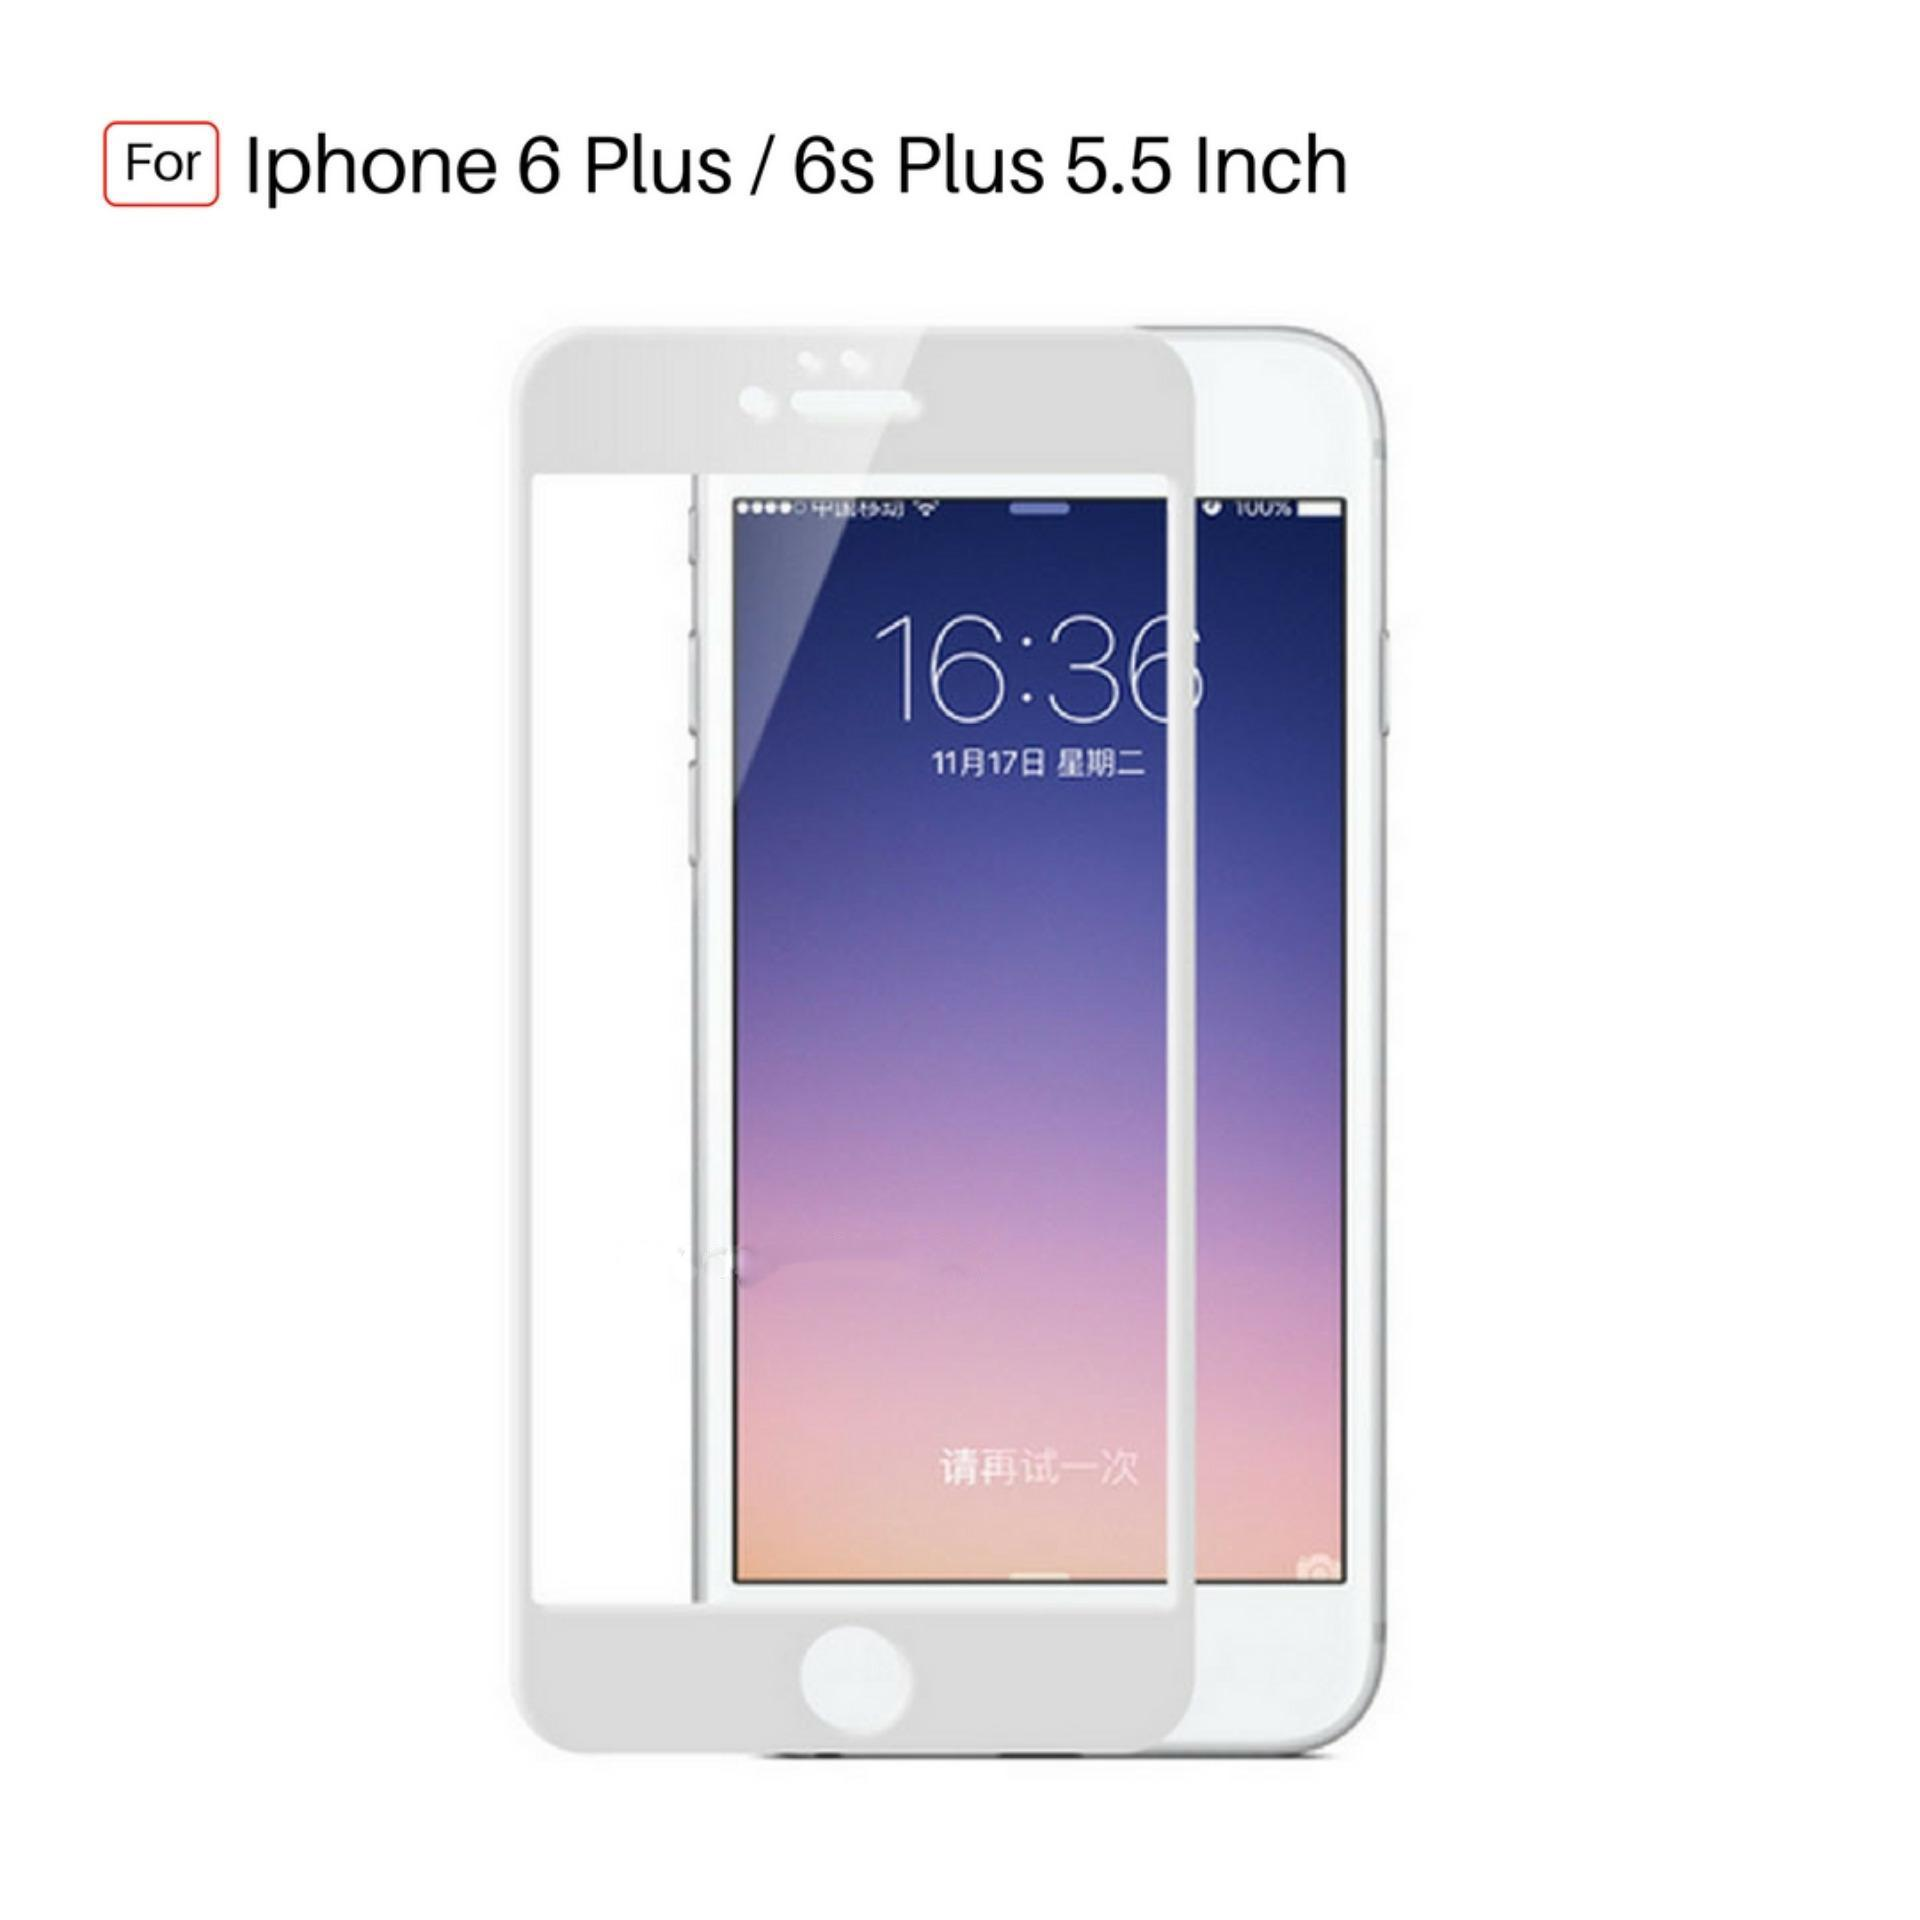 Tempered Glass Warna Full Corning Screen Protector For Iphone 6 Plus / 6s Plus 5.5 inch - White